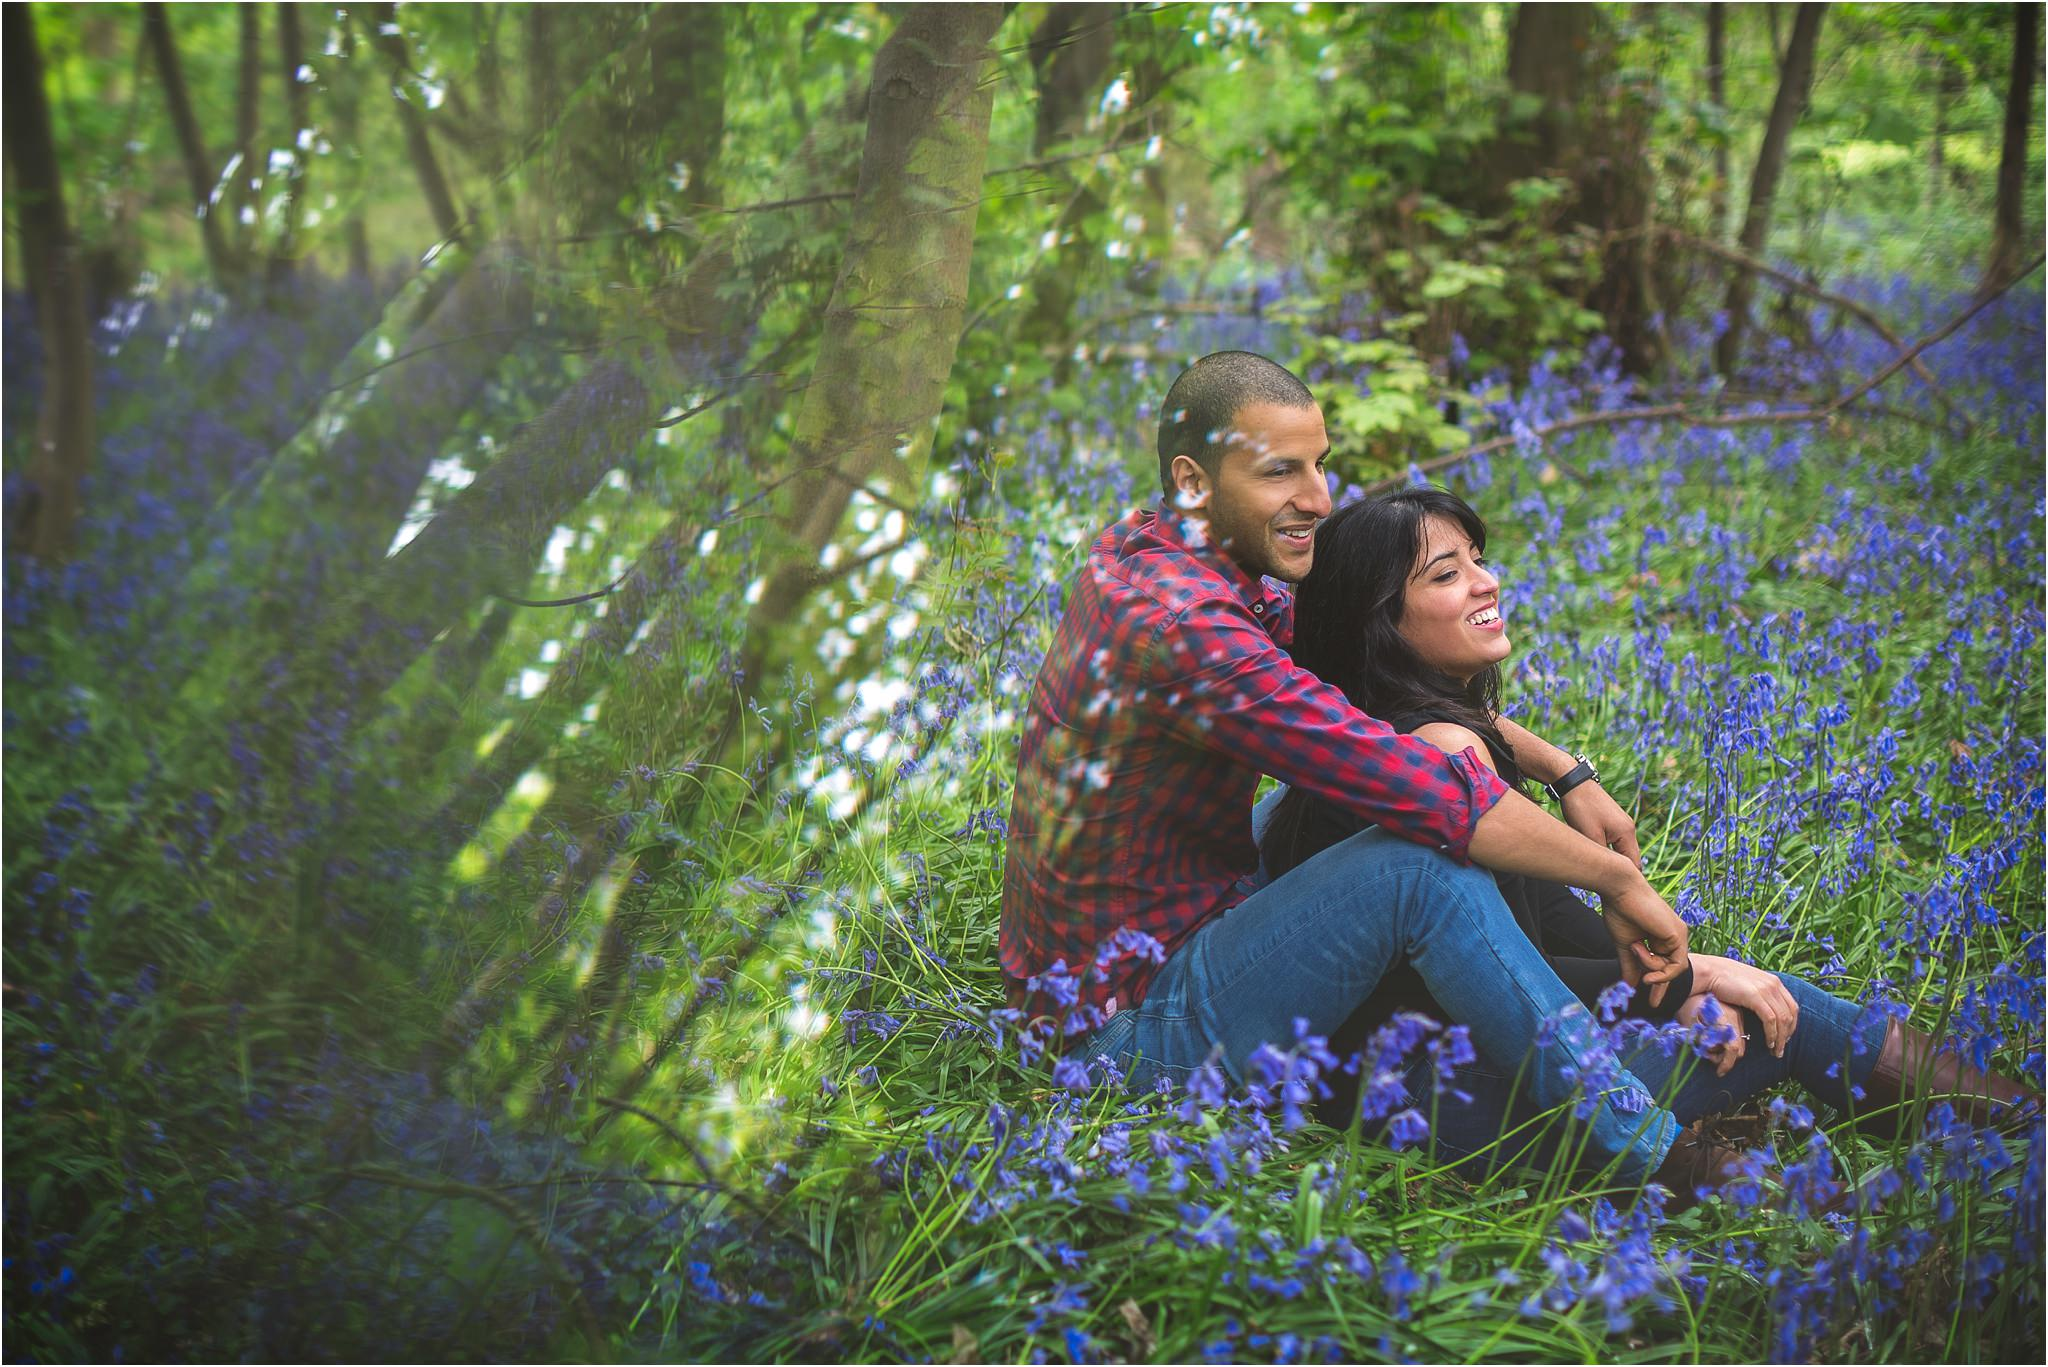 Couple sitting amongst bluebells with a reflective effect in the left side of the image.